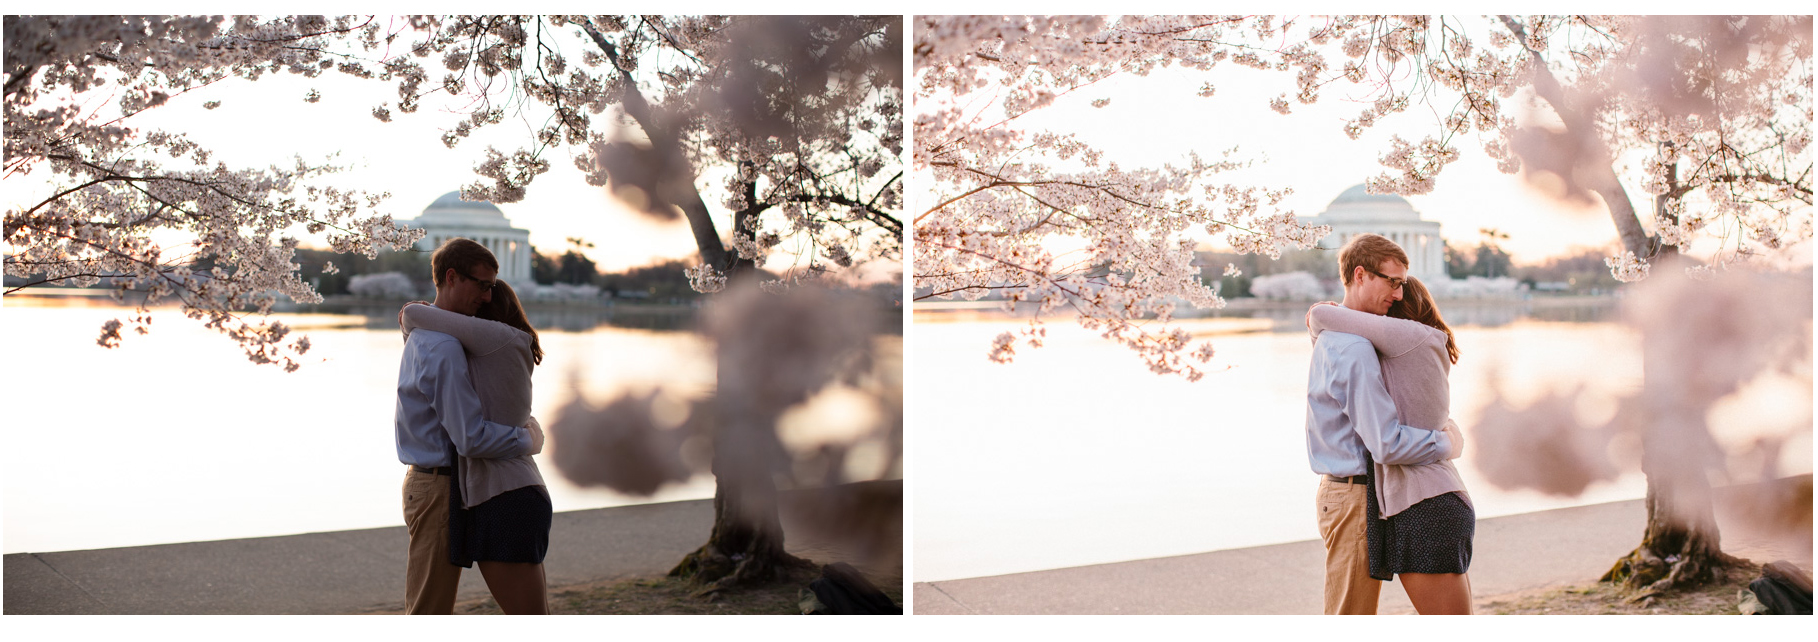 how i edit my photos with VSCO and Mastin presets for lightroom